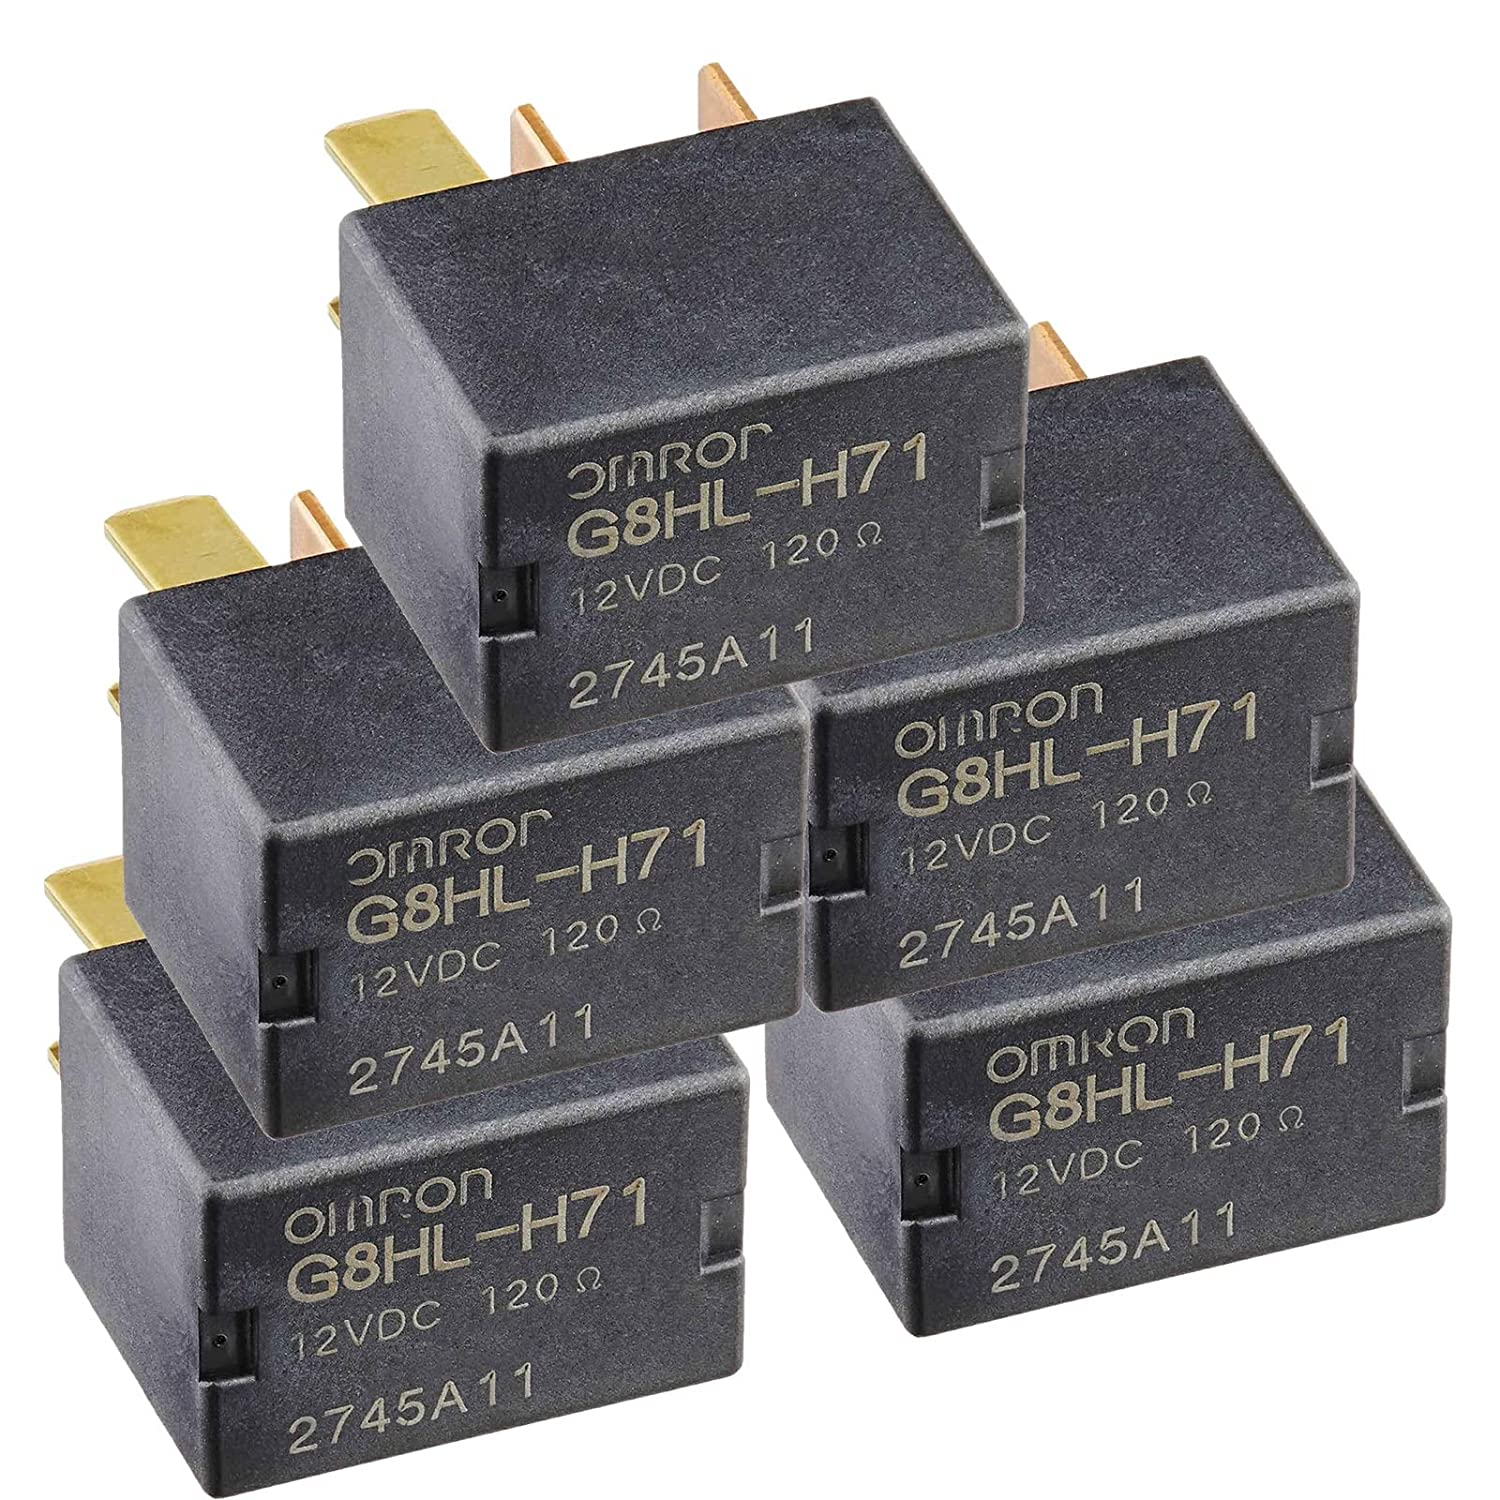 5 Pack G8HL-H71 AC and Starter Relay 39794-SDA-A03 39794-SDA-A05 Compatible for Crosstour CR-V CR-Z Element Insight Odyssey Pilot Acura TL TSX MDX